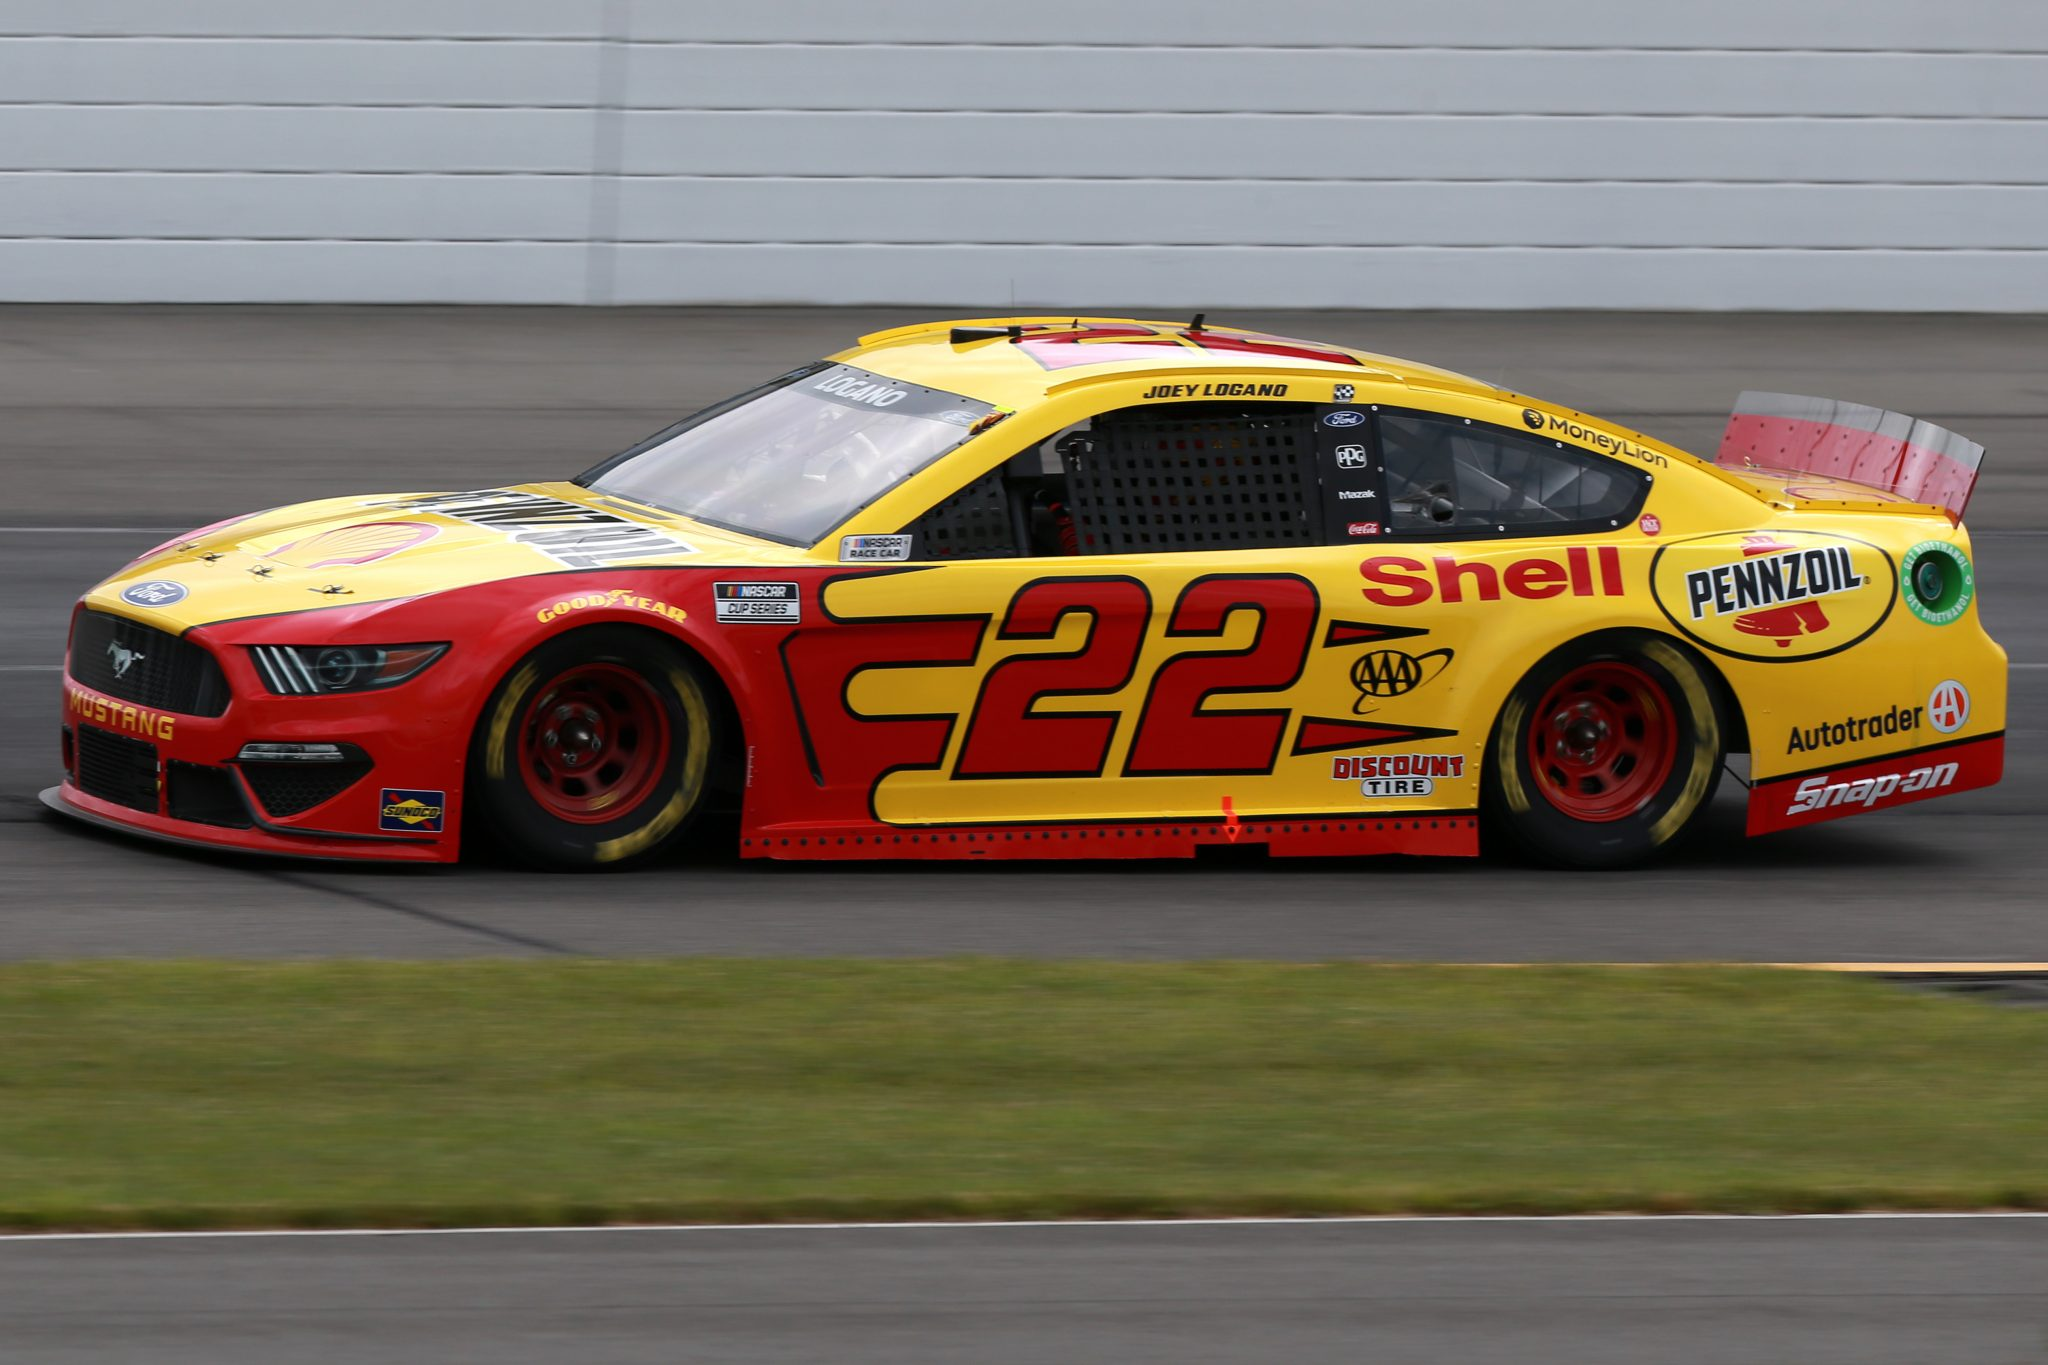 LONG POND, PENNSYLVANIA - JUNE 26: Joey Logano, driver of the #22 Shell Pennzoil Ford, drives during the NASCAR Cup Series Pocono Organics CBD 325 at Pocono Raceway on June 26, 2021 in Long Pond, Pennsylvania. (Photo by Sean Gardner/Getty Images) | Getty Images